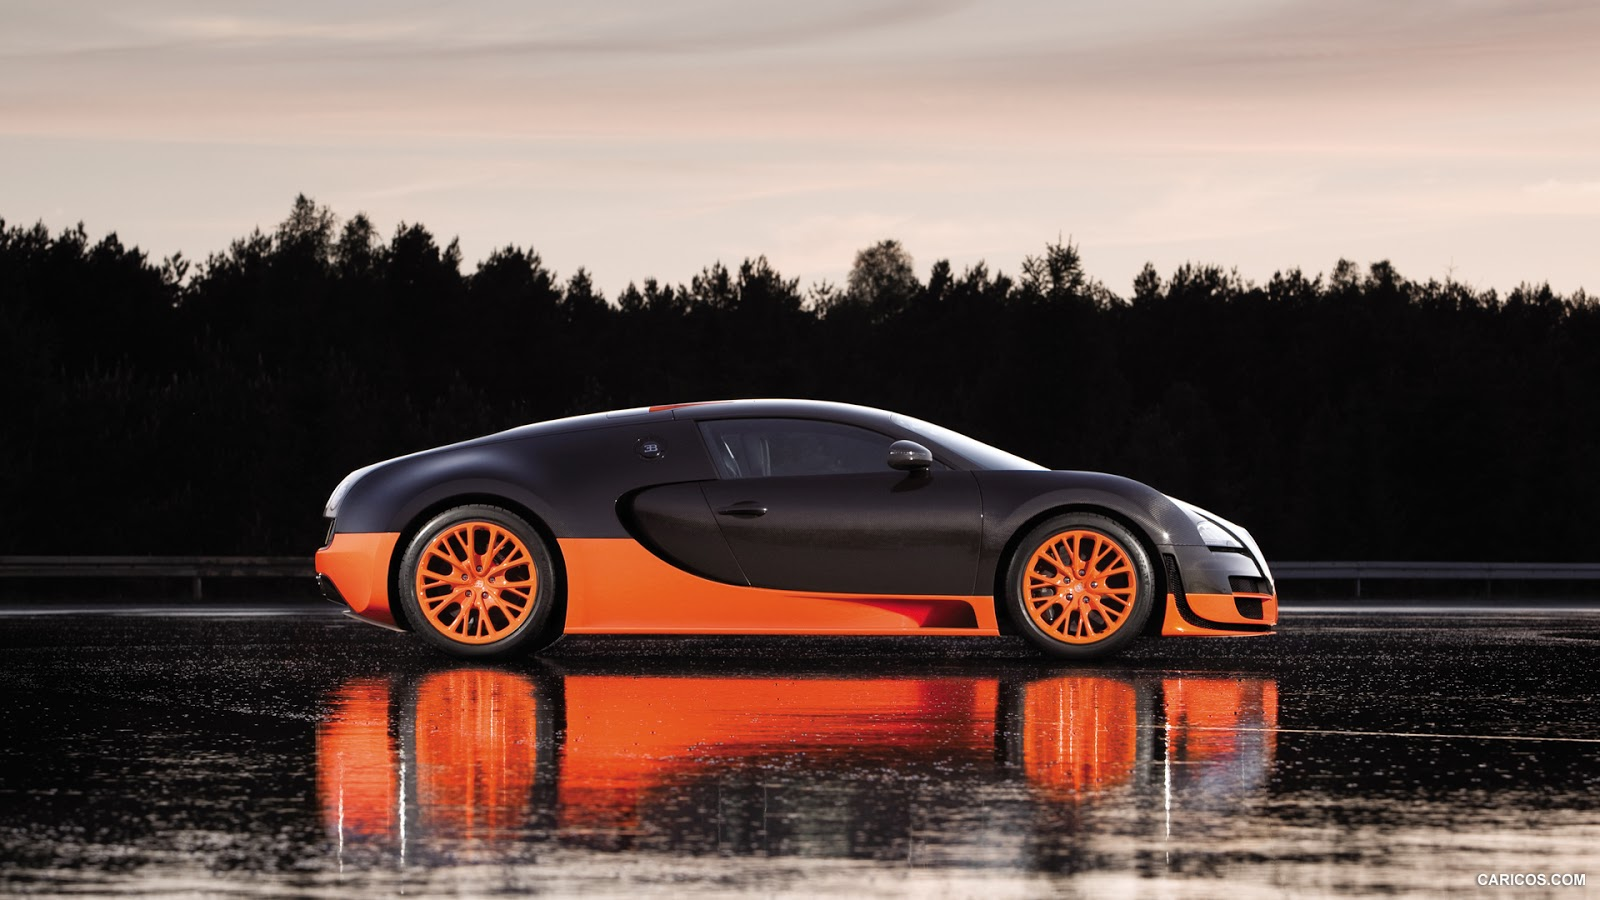 Bugatti Veyron Super Sport 2013 Wallpaper Engine Diagram Email This Blogthis Share To Twitter Facebook 2014